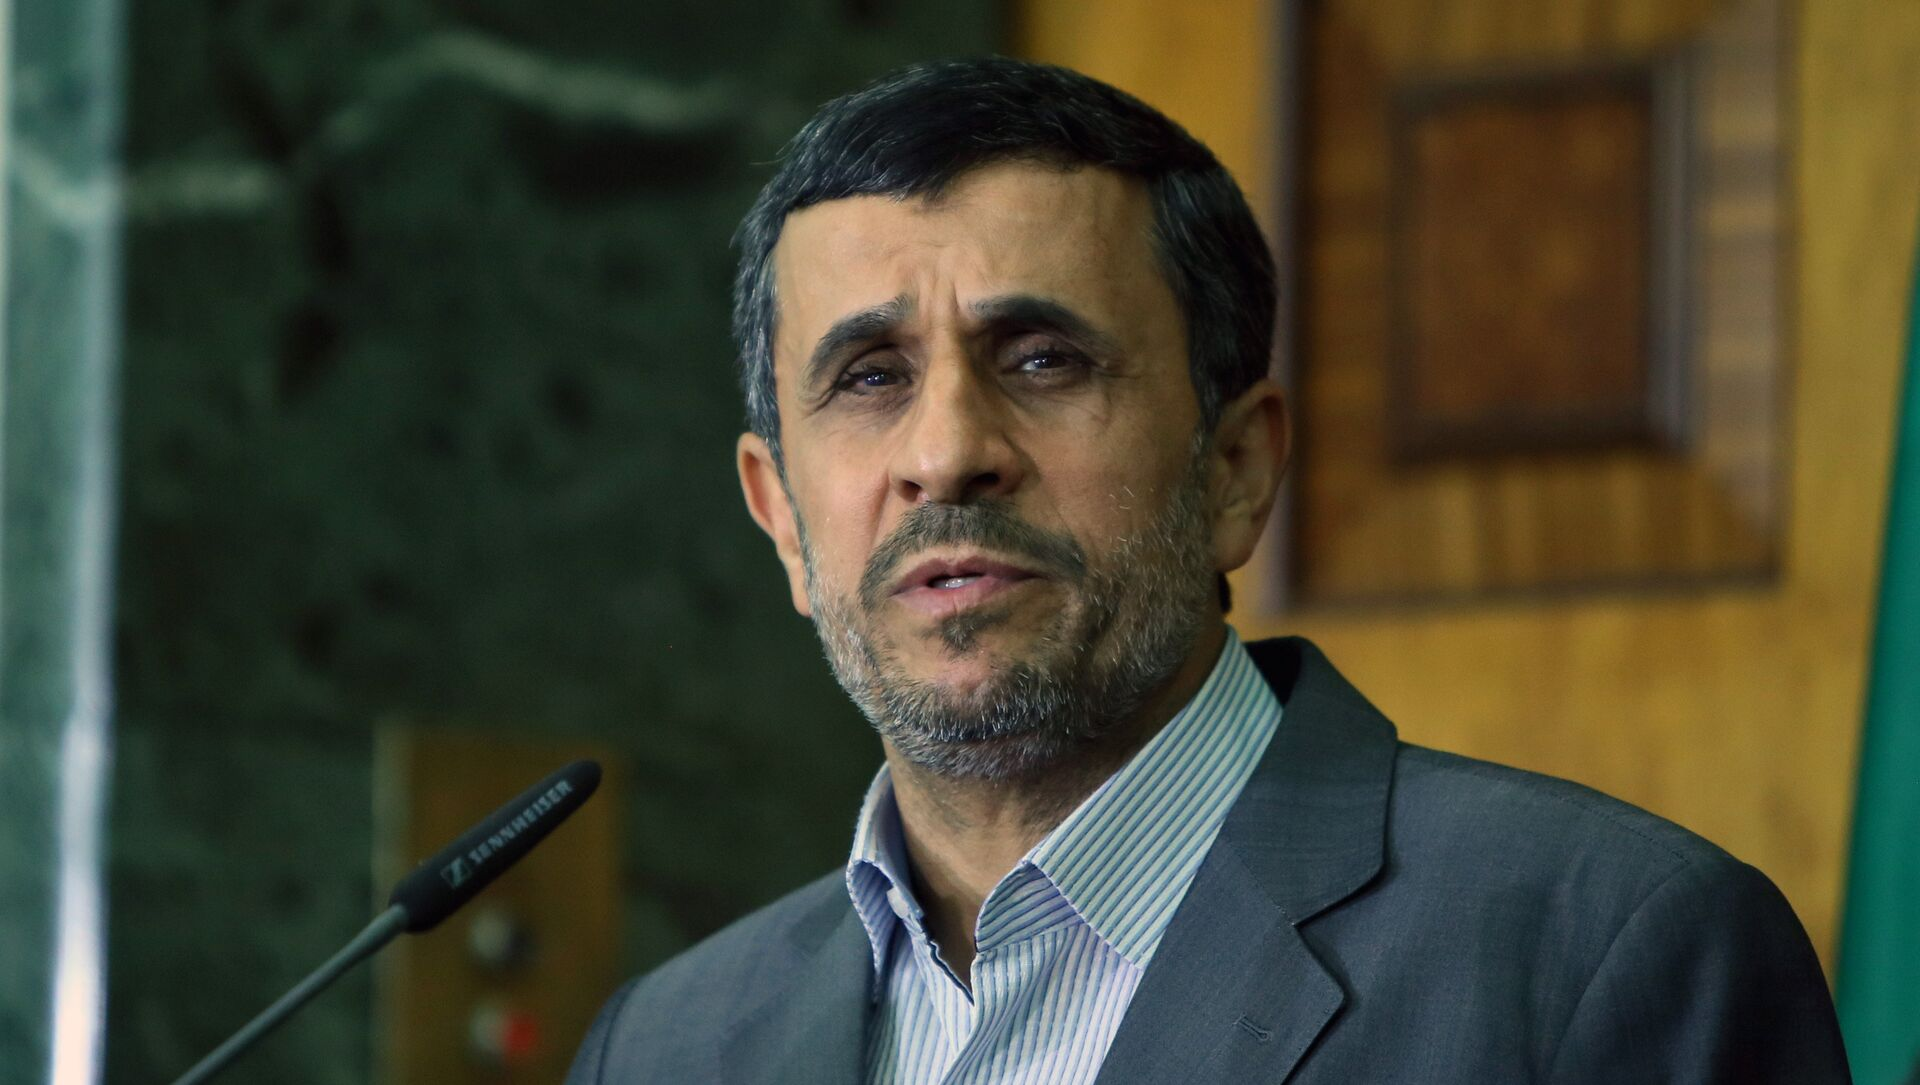 This file photo taken on July 18, 2013 shows Iran's then outgoing President Mahmoud Ahmadinejad speaking during a press conference at the presidential palace in Baghdad. - Sputnik Italia, 1920, 12.05.2021